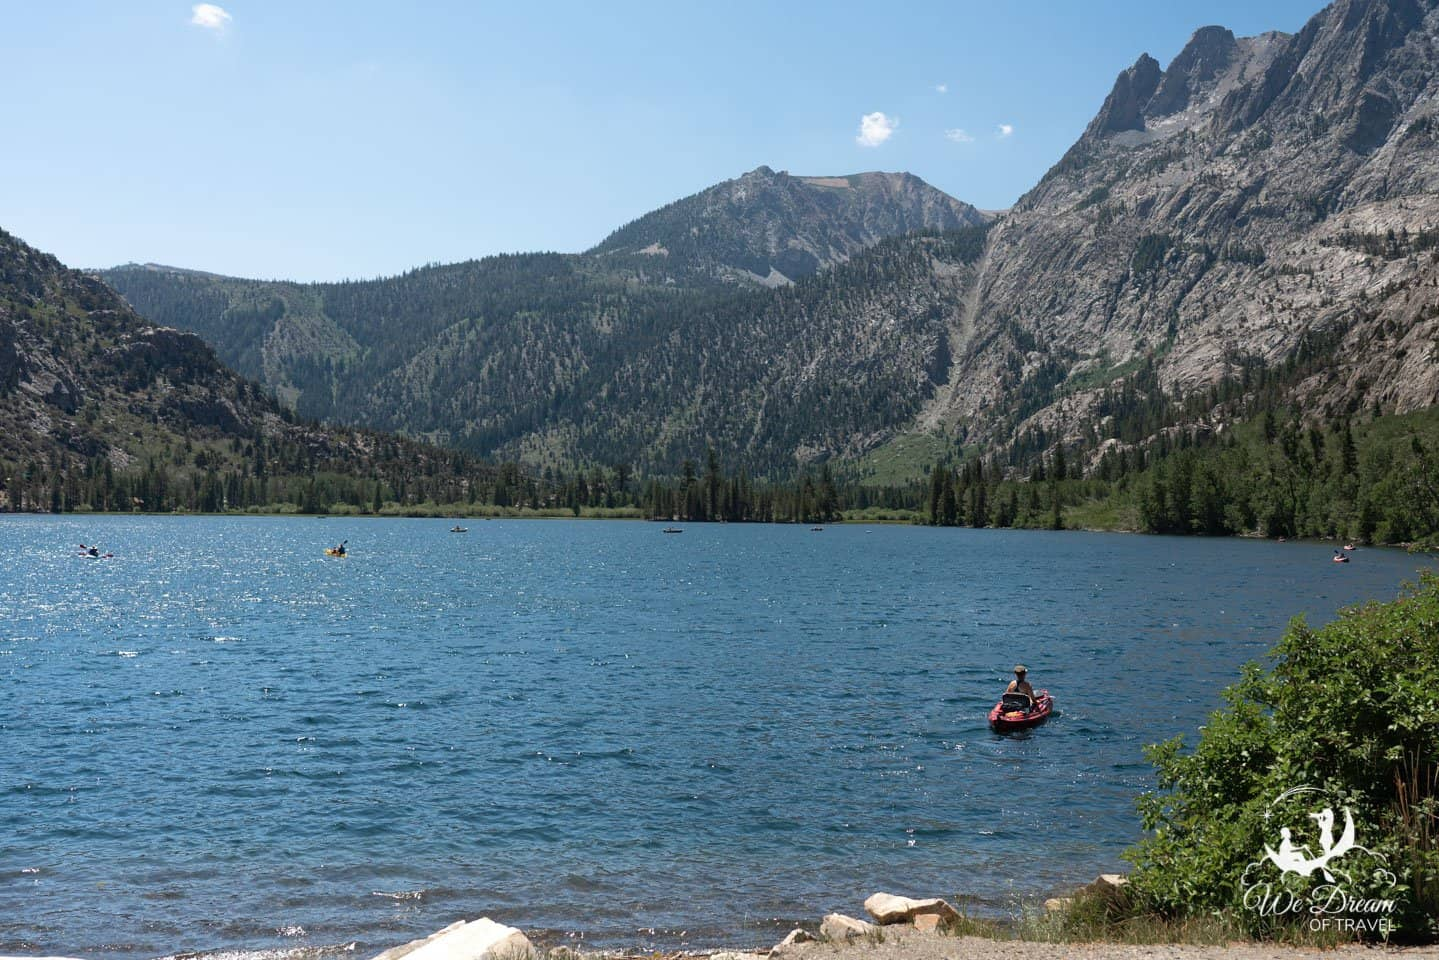 Kayakers flock to Silver Lake for a day on the water with breathtaking views of the Sierras.